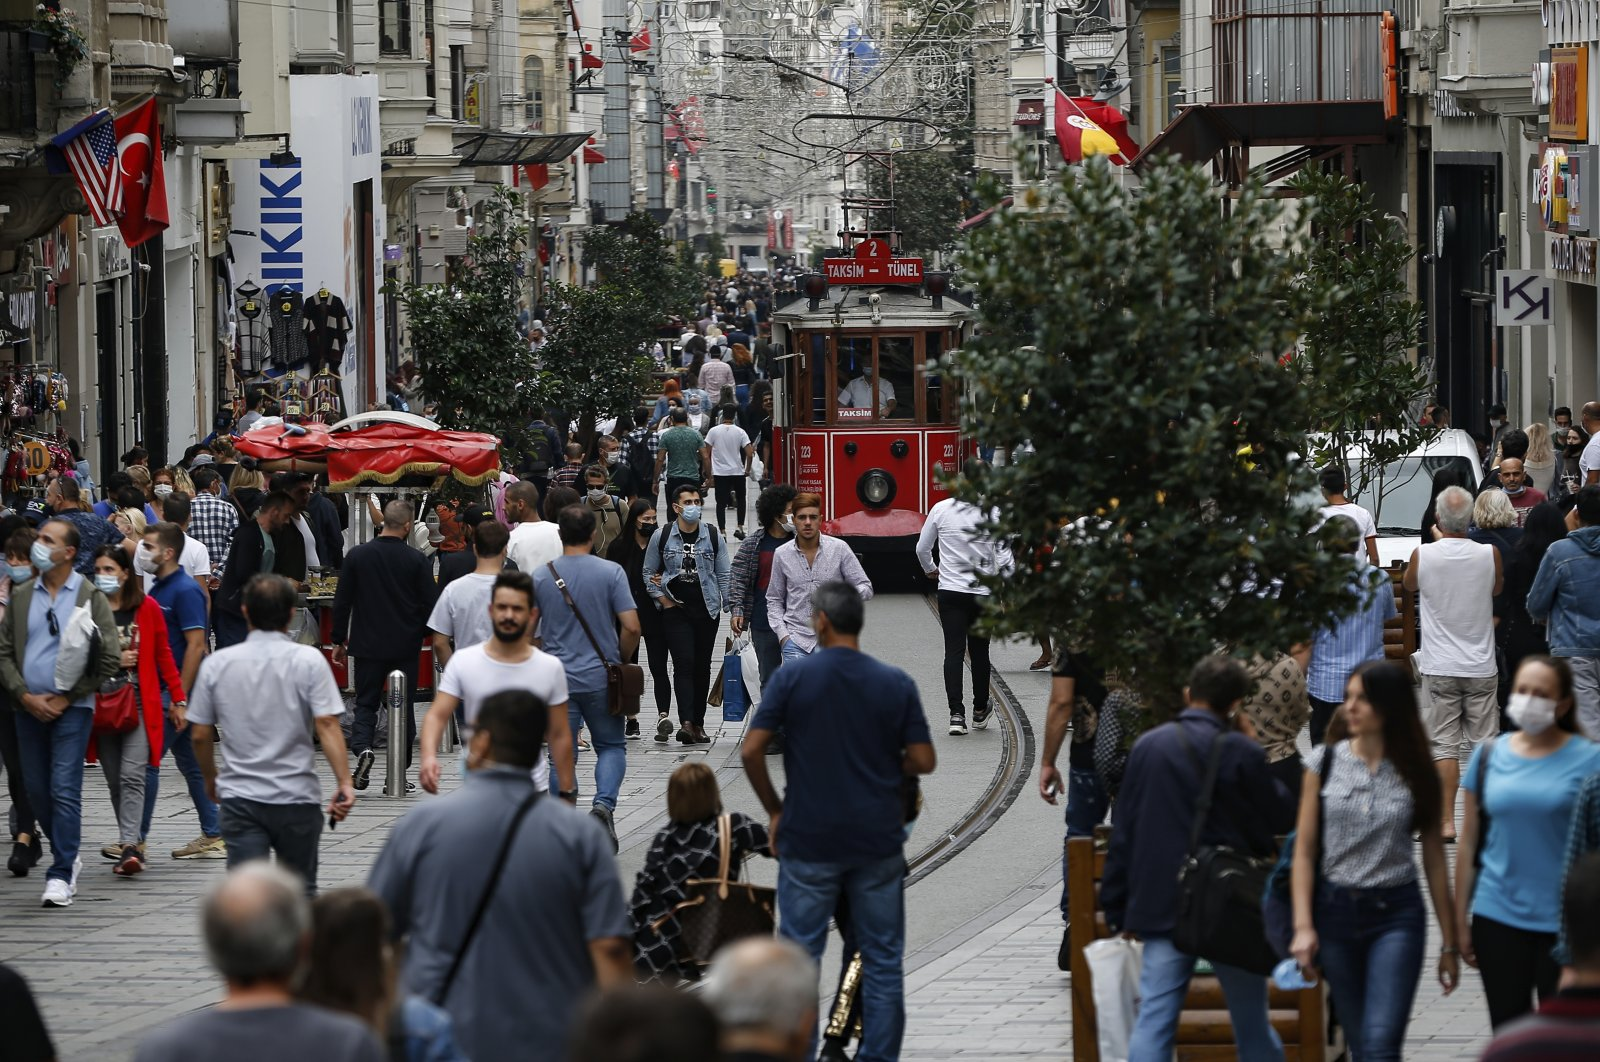 People, most wearing masks to help protect against the spread of the coronavirus, walk along Istiklal Street, the main shopping street in Istanbul, Turkey, Oct. 9, 2020. (AP Photo)